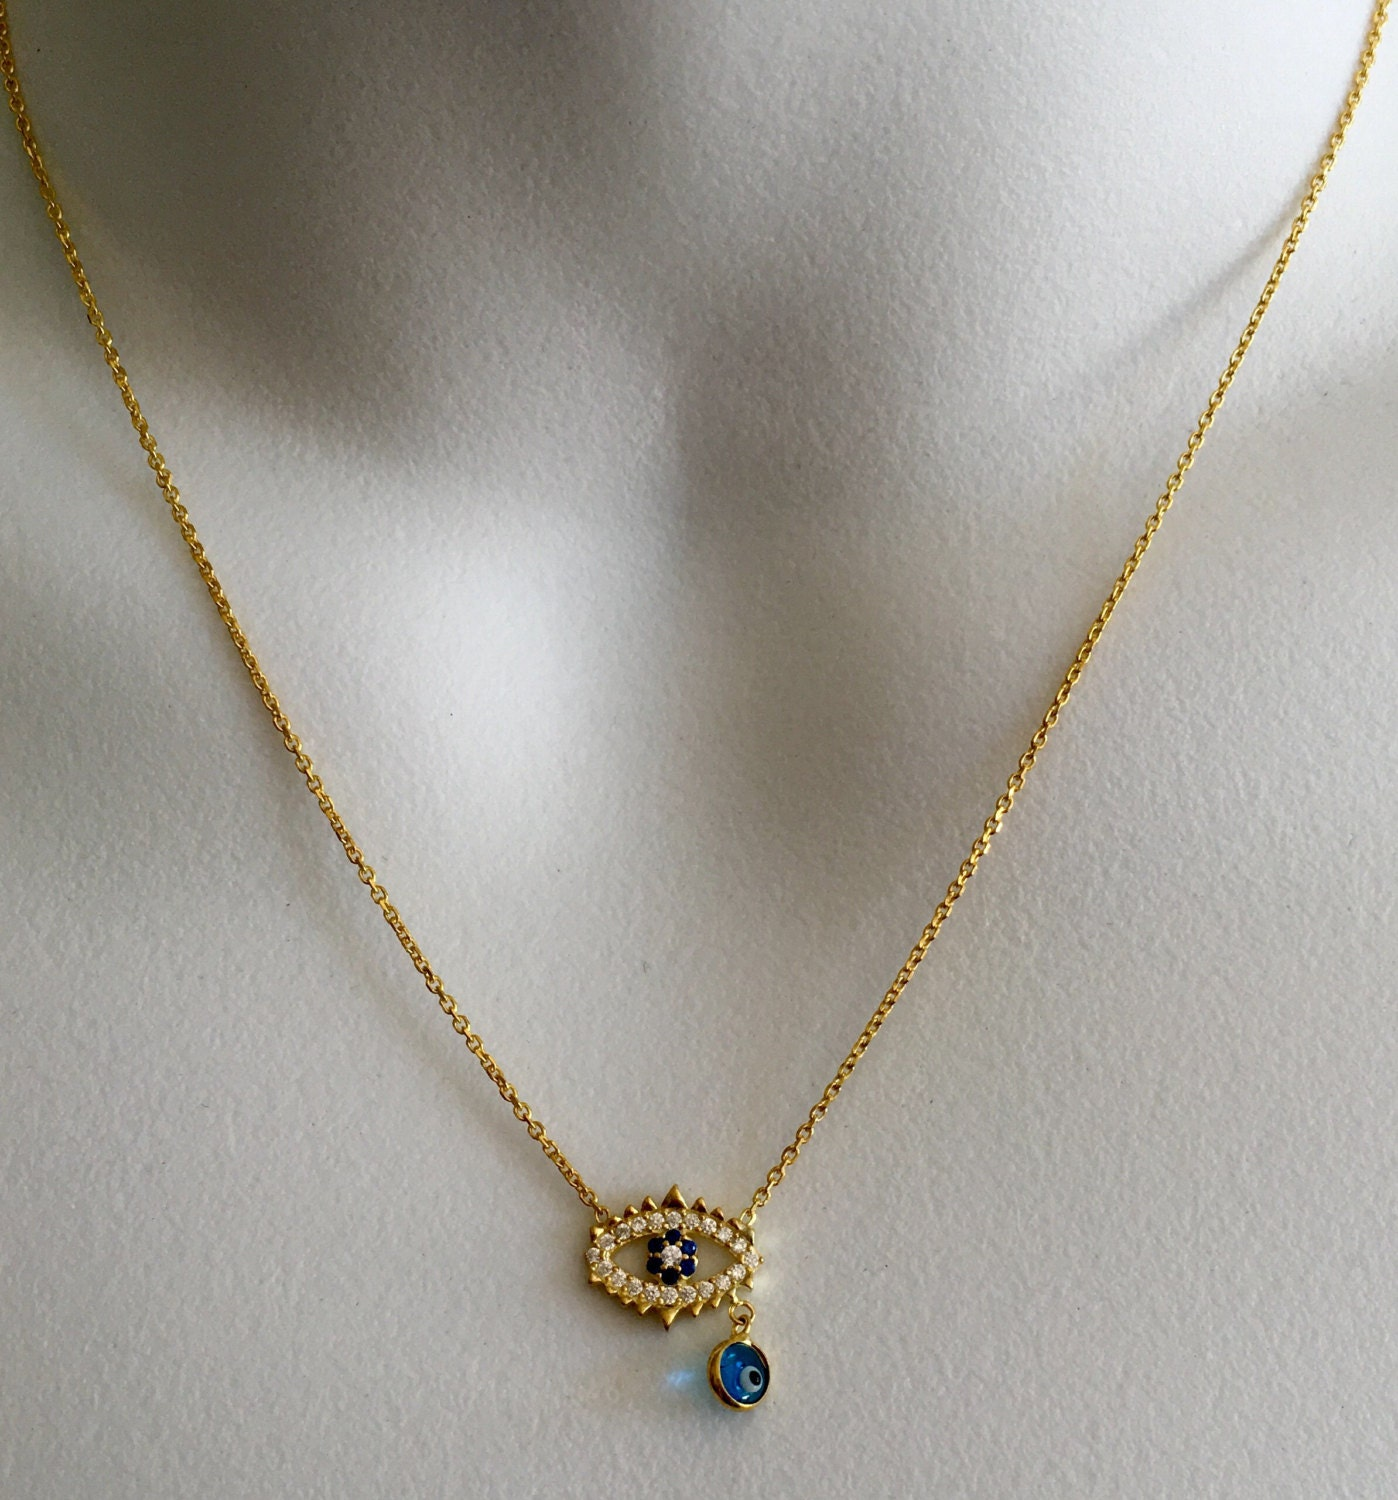 14 karat gold evil eye necklace